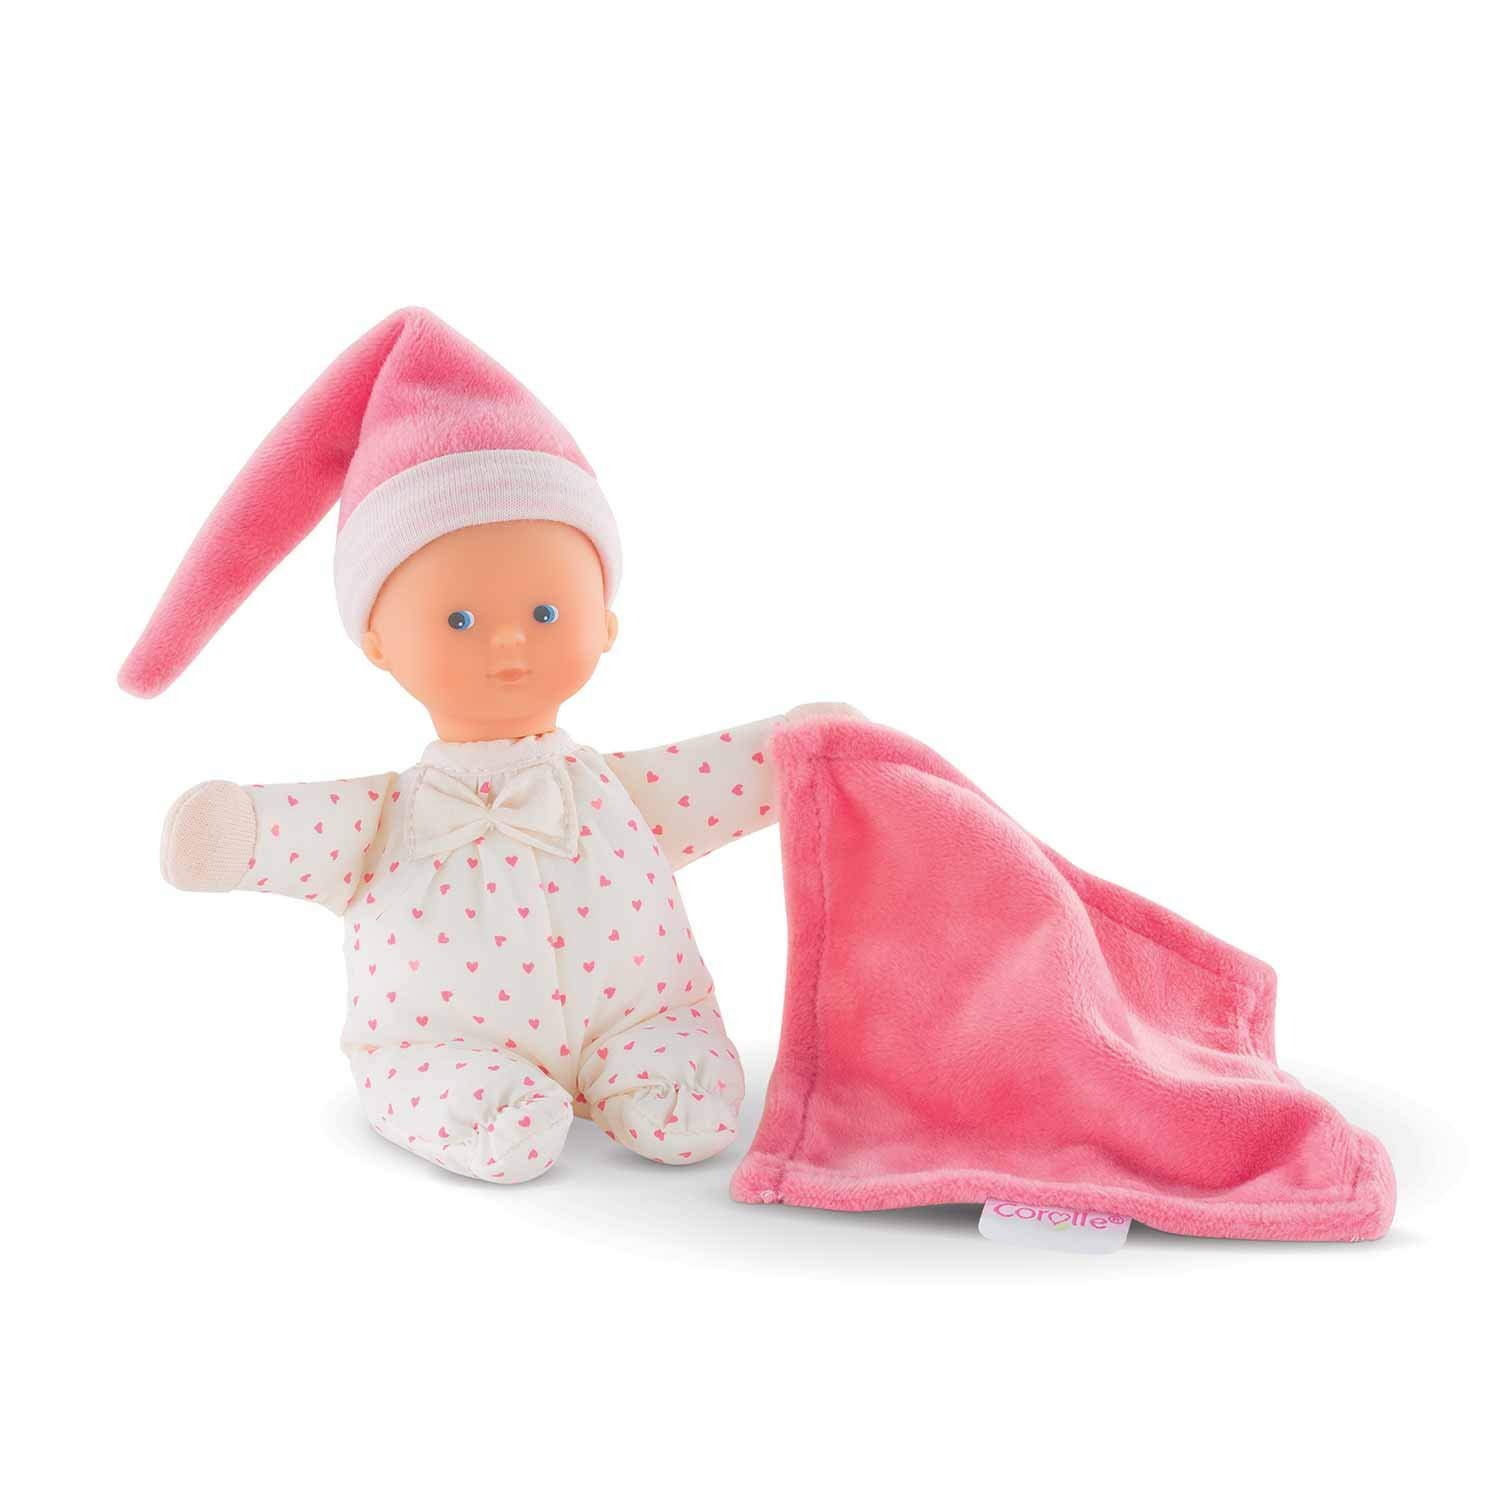 Cool kids' gifts under $15: Corolle baby doll